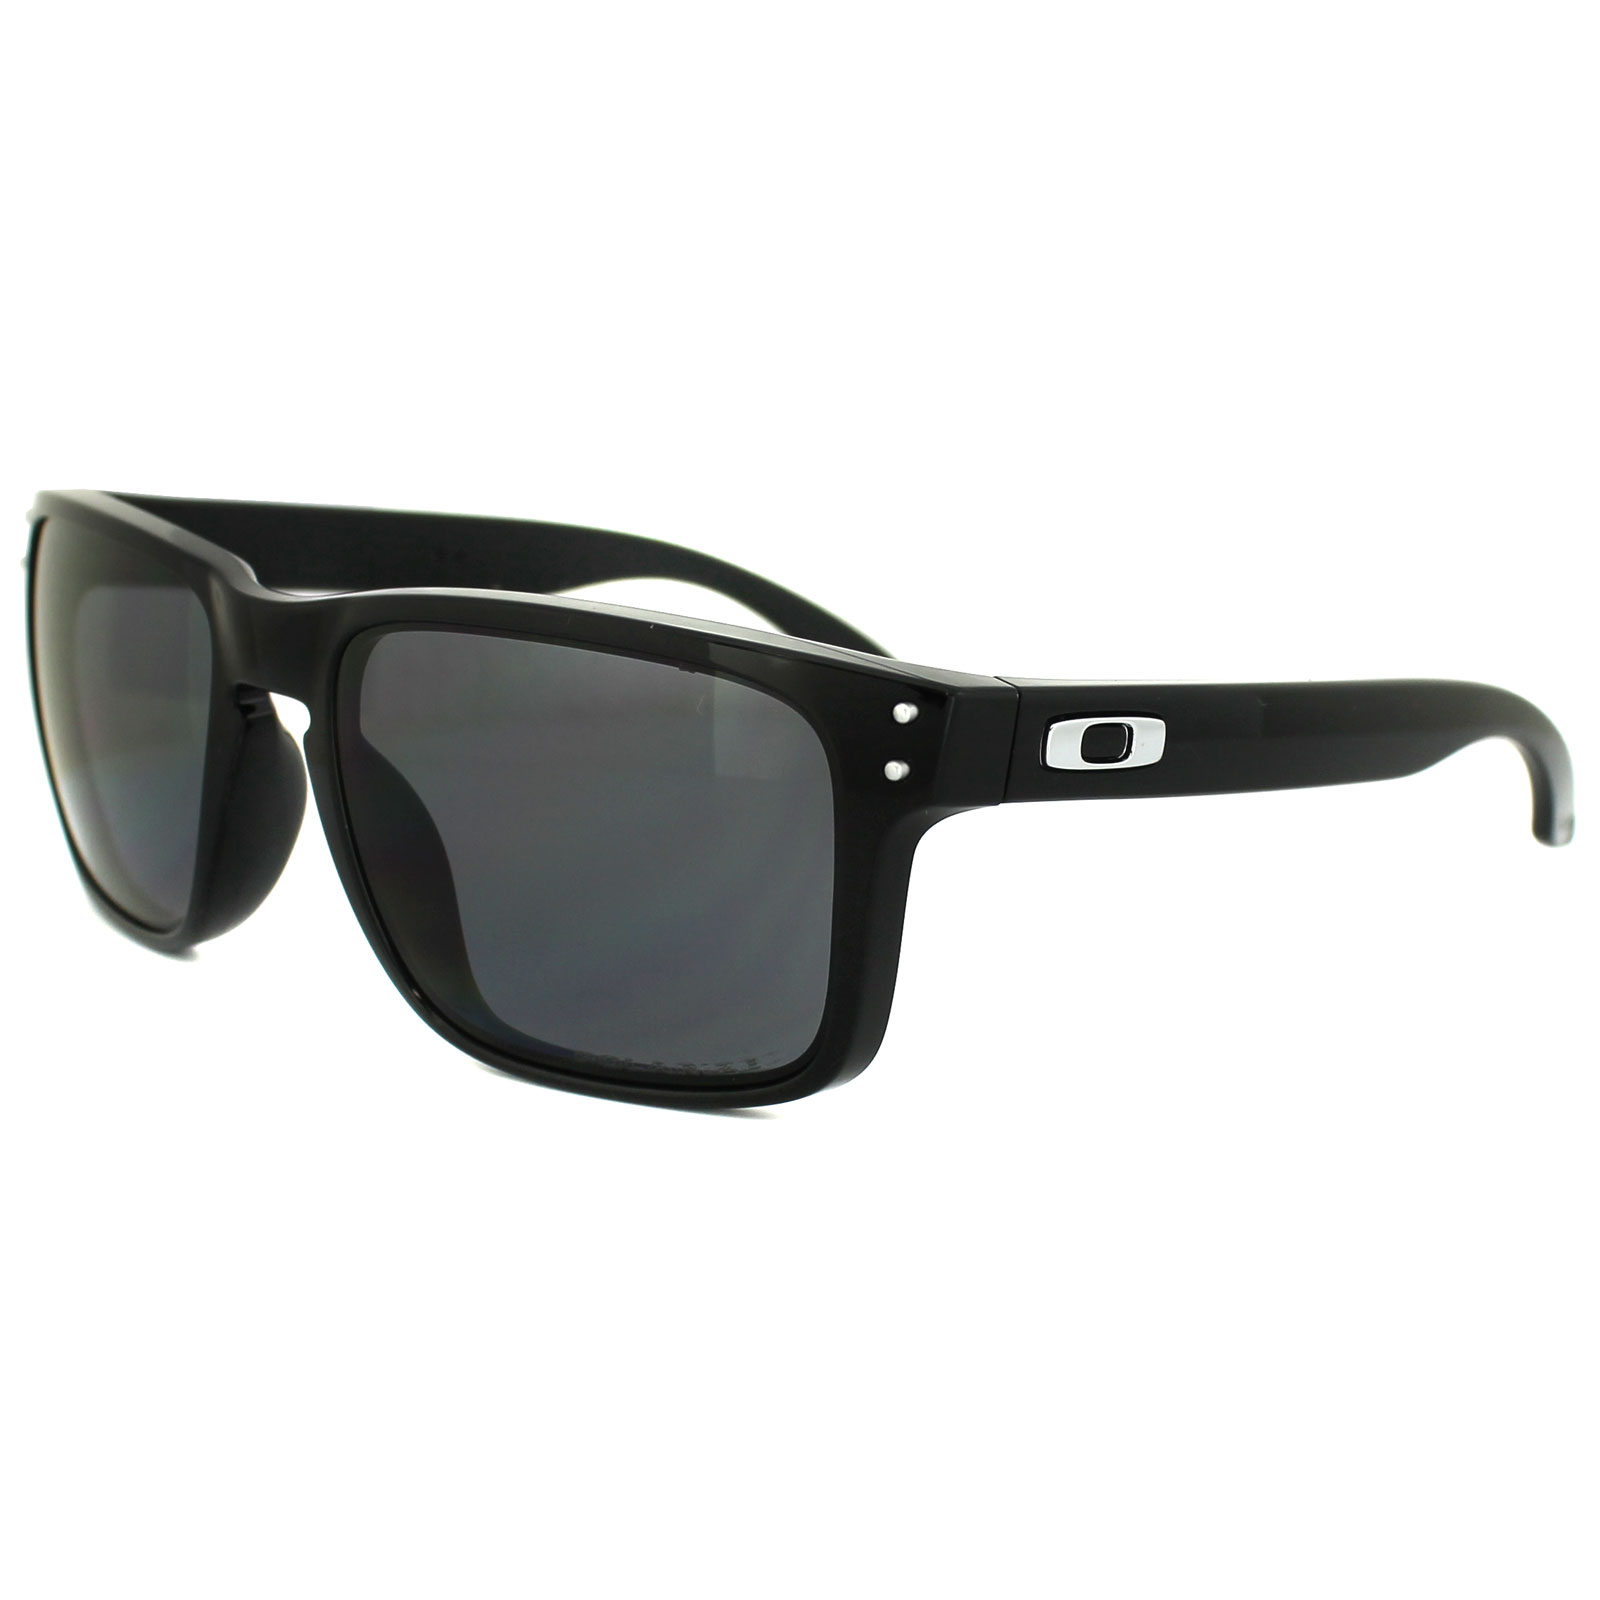 27db230a7c3ee Sentinel Oakley Sunglasses Holbrook Polished Black Grey Polarized OO9102-02